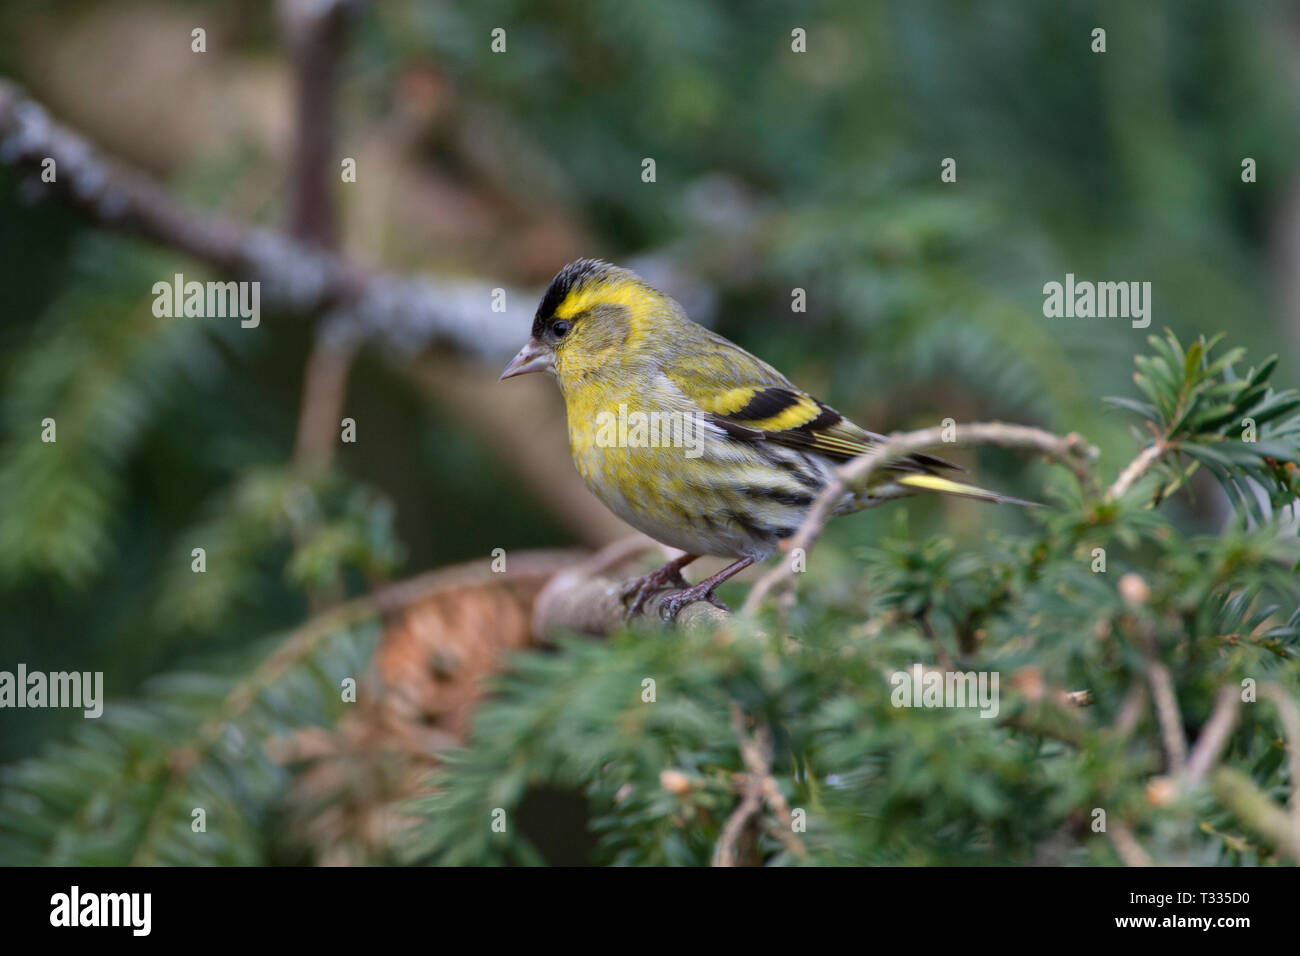 Siskin, Carduelis spinus, single adult male perched on conifer tree. Taken March. Arundel, West Sussex, UK. - Stock Image